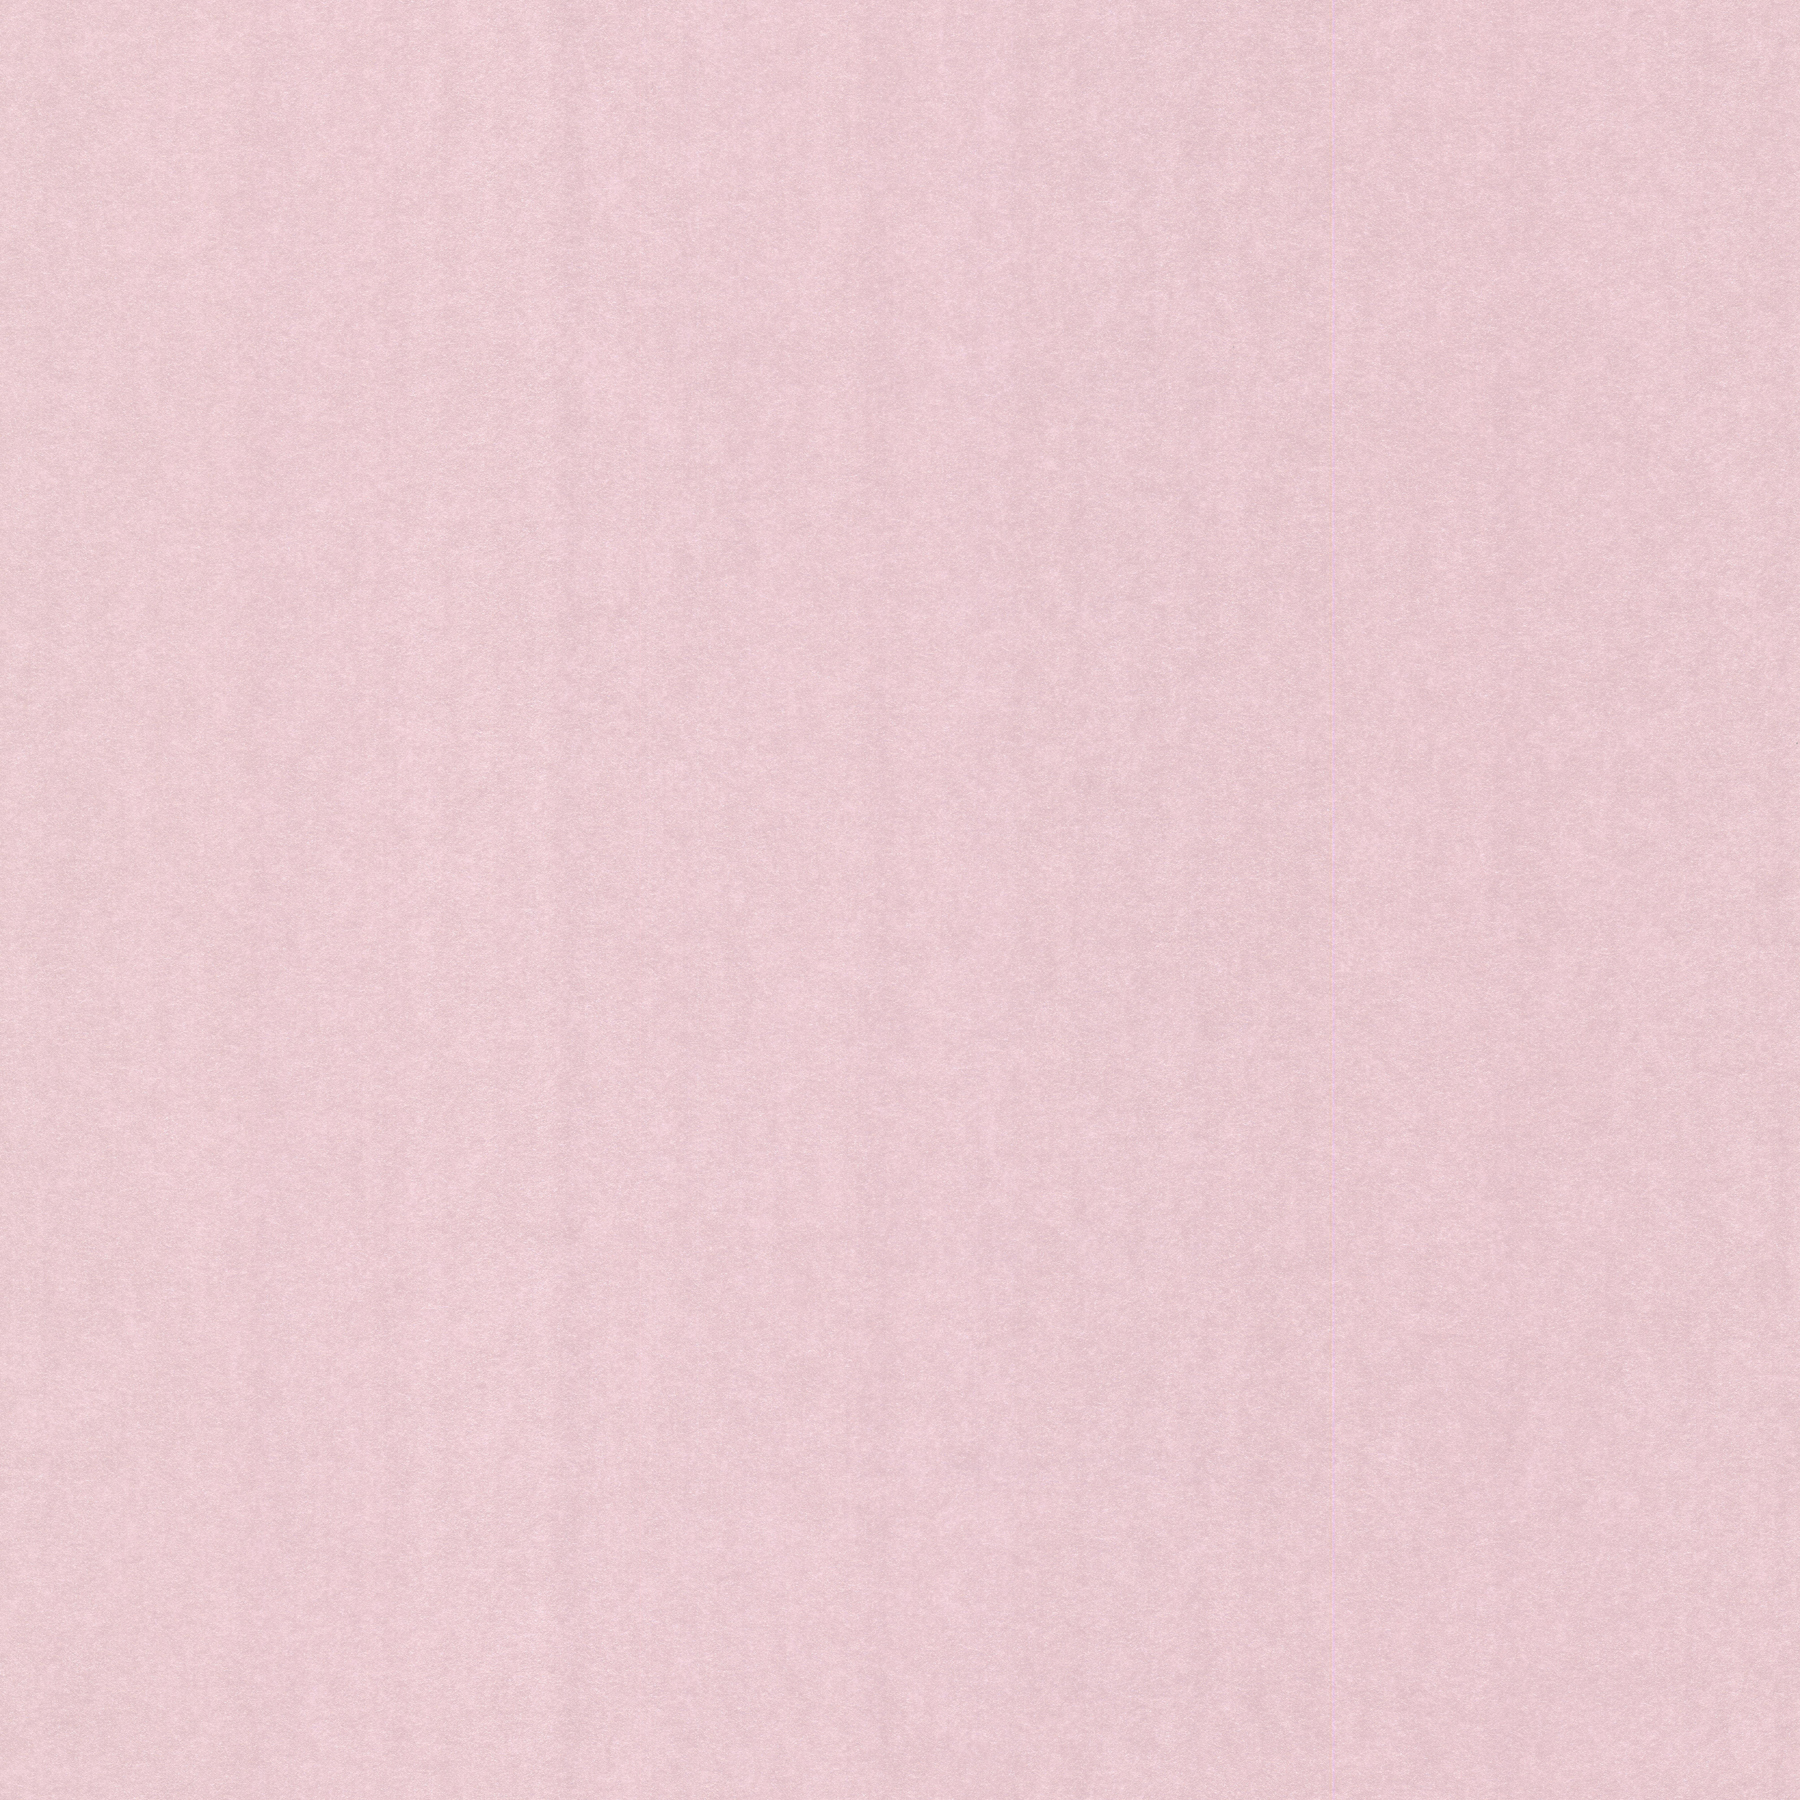 Picture of Arta Pink Textured